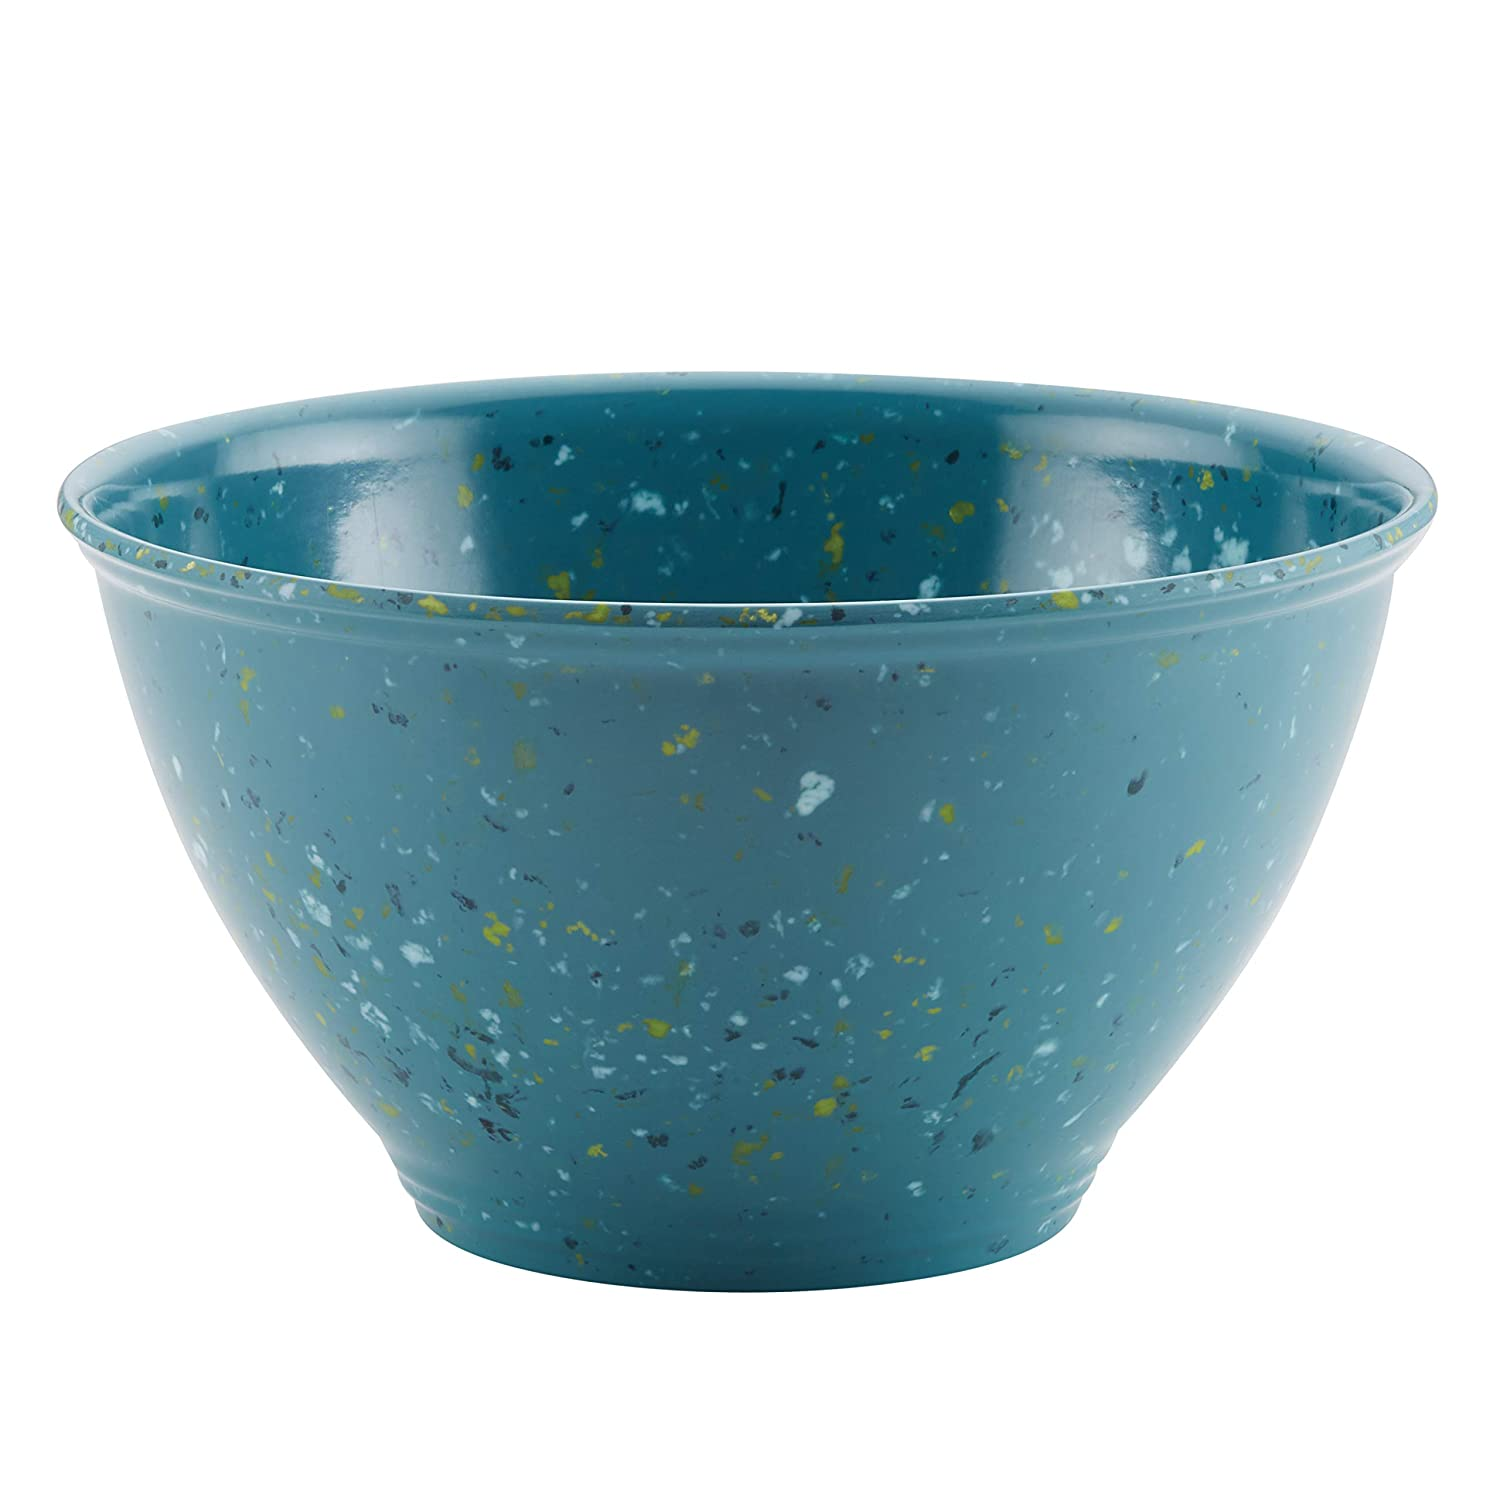 Rachael Ray Kitchenware Garbage Bowl, Agave Blue